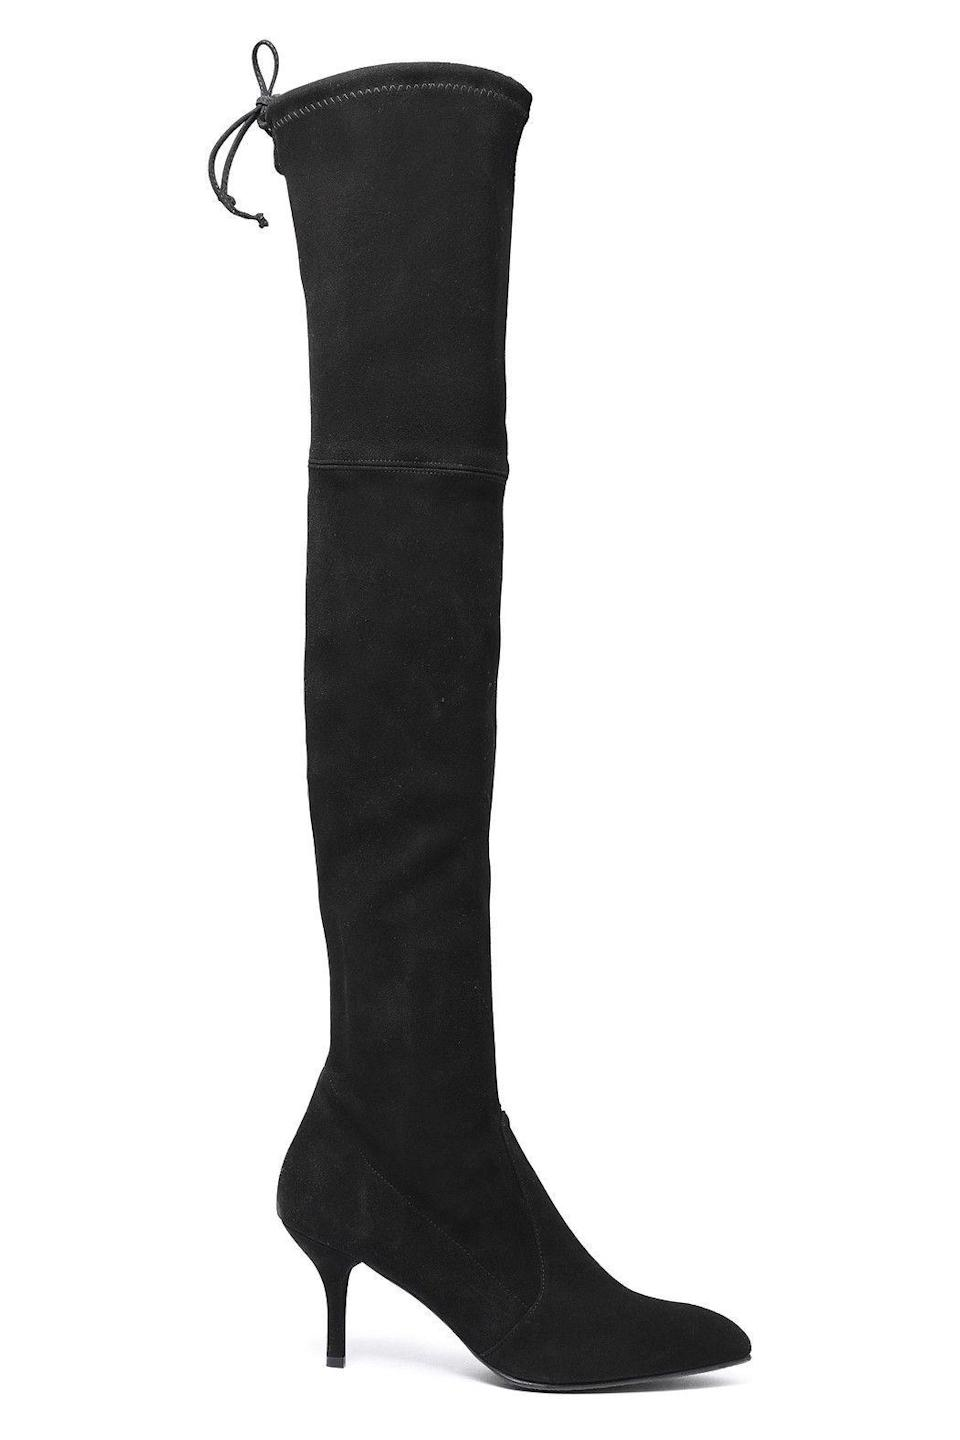 """<p><strong>STUART WEITZMAN</strong></p><p>theoutnet.com</p><p><strong>$399.00</strong></p><p><a href=""""https://go.redirectingat.com?id=74968X1596630&url=https%3A%2F%2Fwww.theoutnet.com%2Fen-us%2Fshop%2Fproduct%2Fstuart-weitzman%2Fboots%2Fmid-heel-boots%2Fbow-detailed-suede-over-the-knee-boots%2F2243576767547969&sref=https%3A%2F%2Fwww.redbookmag.com%2Ffashion%2Fg34807151%2Fthe-outnets-black-friday-sale-2020%2F"""" rel=""""nofollow noopener"""" target=""""_blank"""" data-ylk=""""slk:Shop Now"""" class=""""link rapid-noclick-resp"""">Shop Now</a></p><p>It's OTK season, people, and no one does them better than Stuart Weitzman.</p>"""